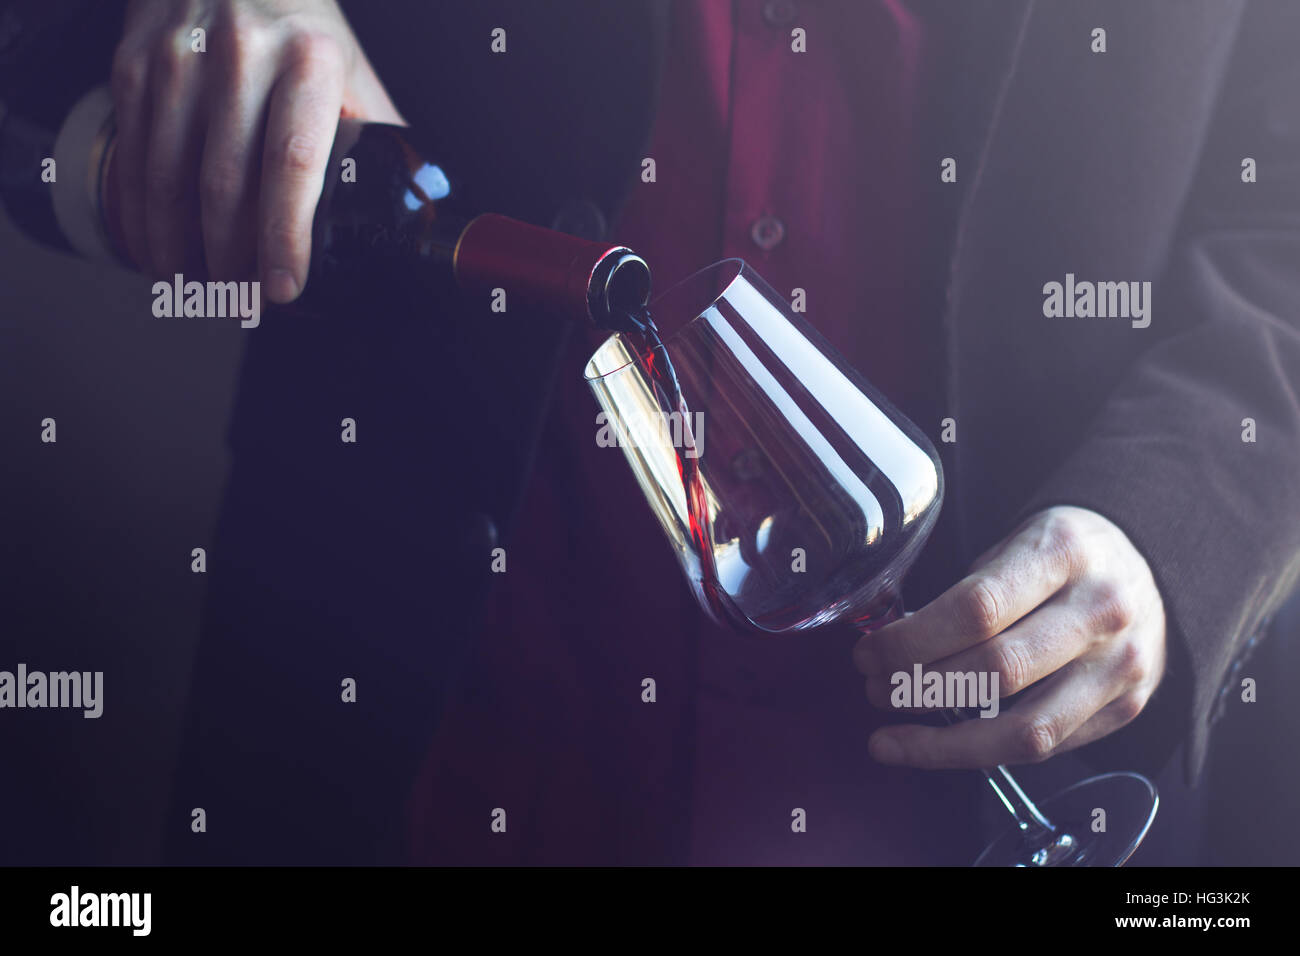 Horizontal close up of Caucasian man in black suit and shirt pouring red wine into a tall glass in a bar - Stock Image